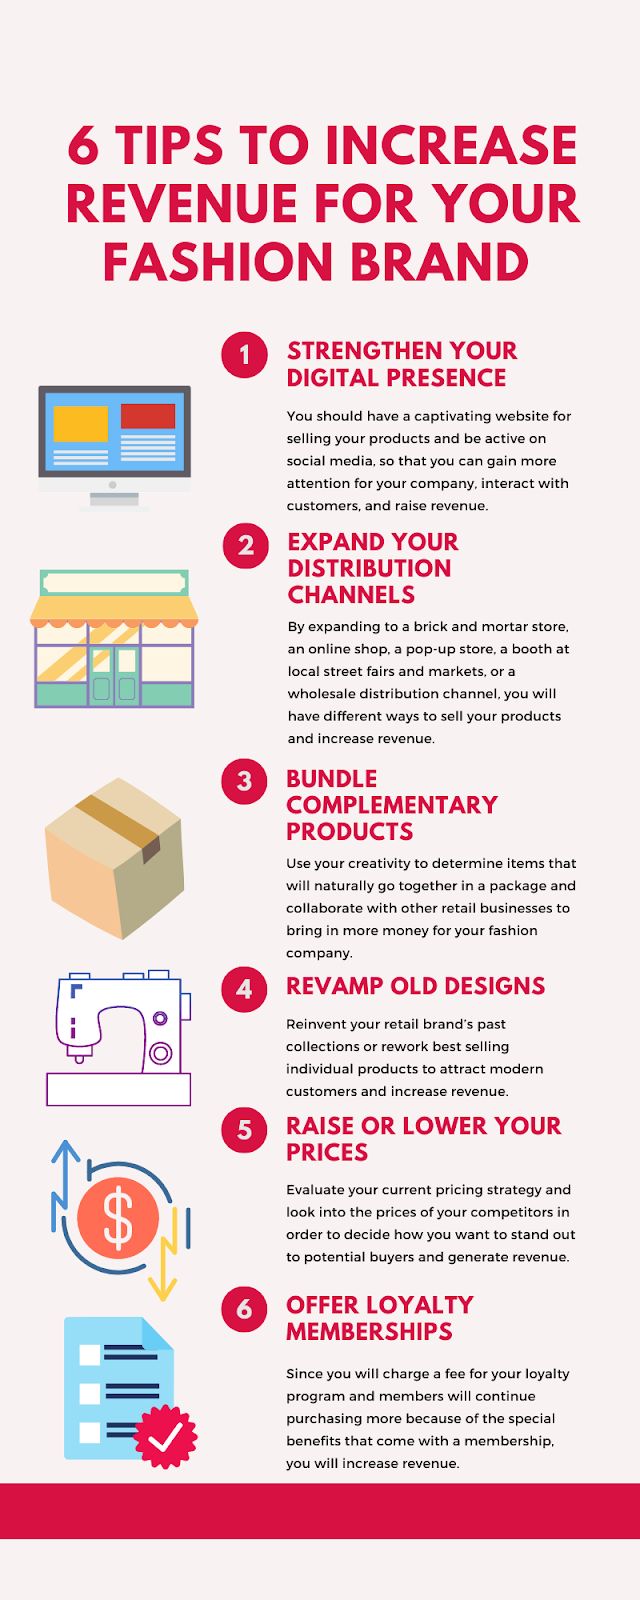 6 Tips to Increase Revenue for Your Fashion Brand